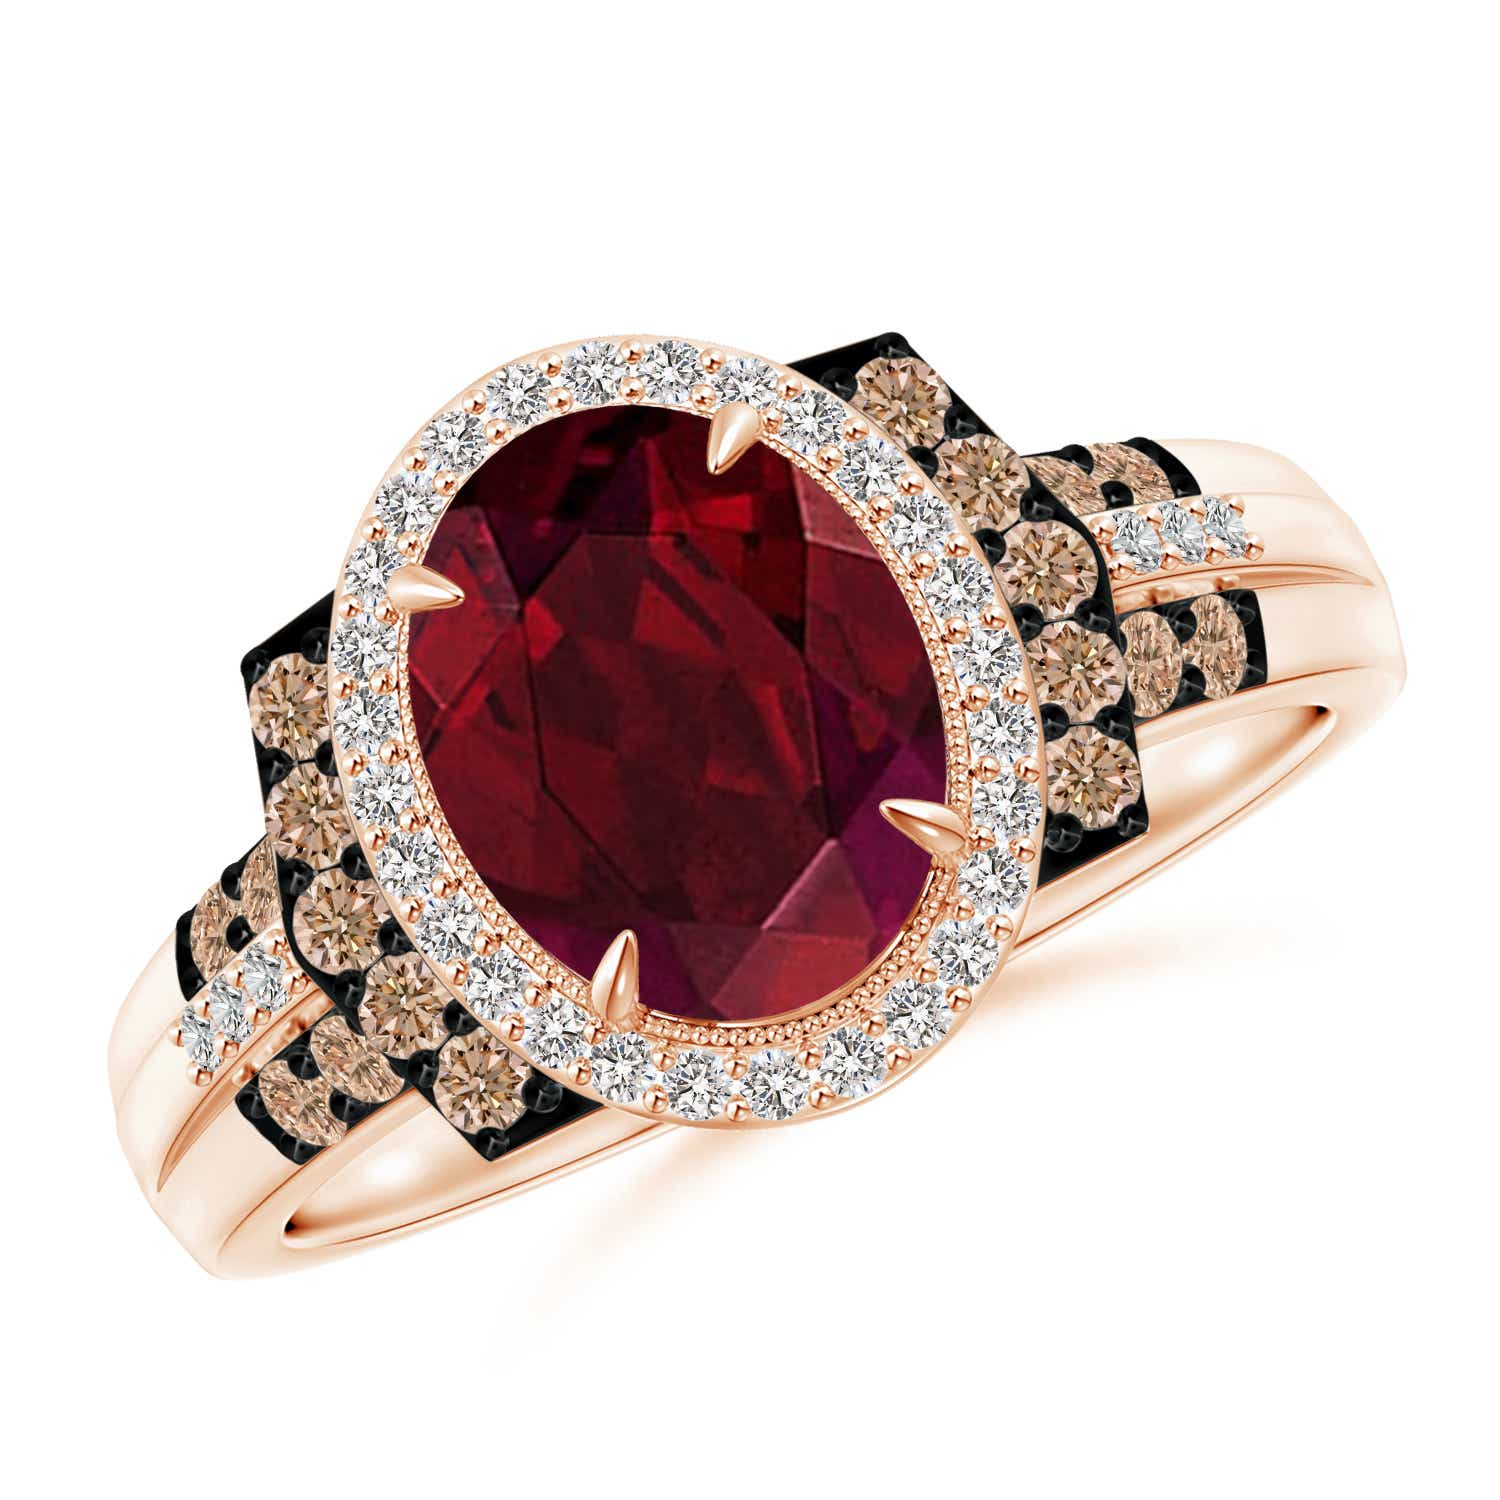 Angara Vintage Diamond Floral Halo Oval Garnet Cocktail Ring hqPVje